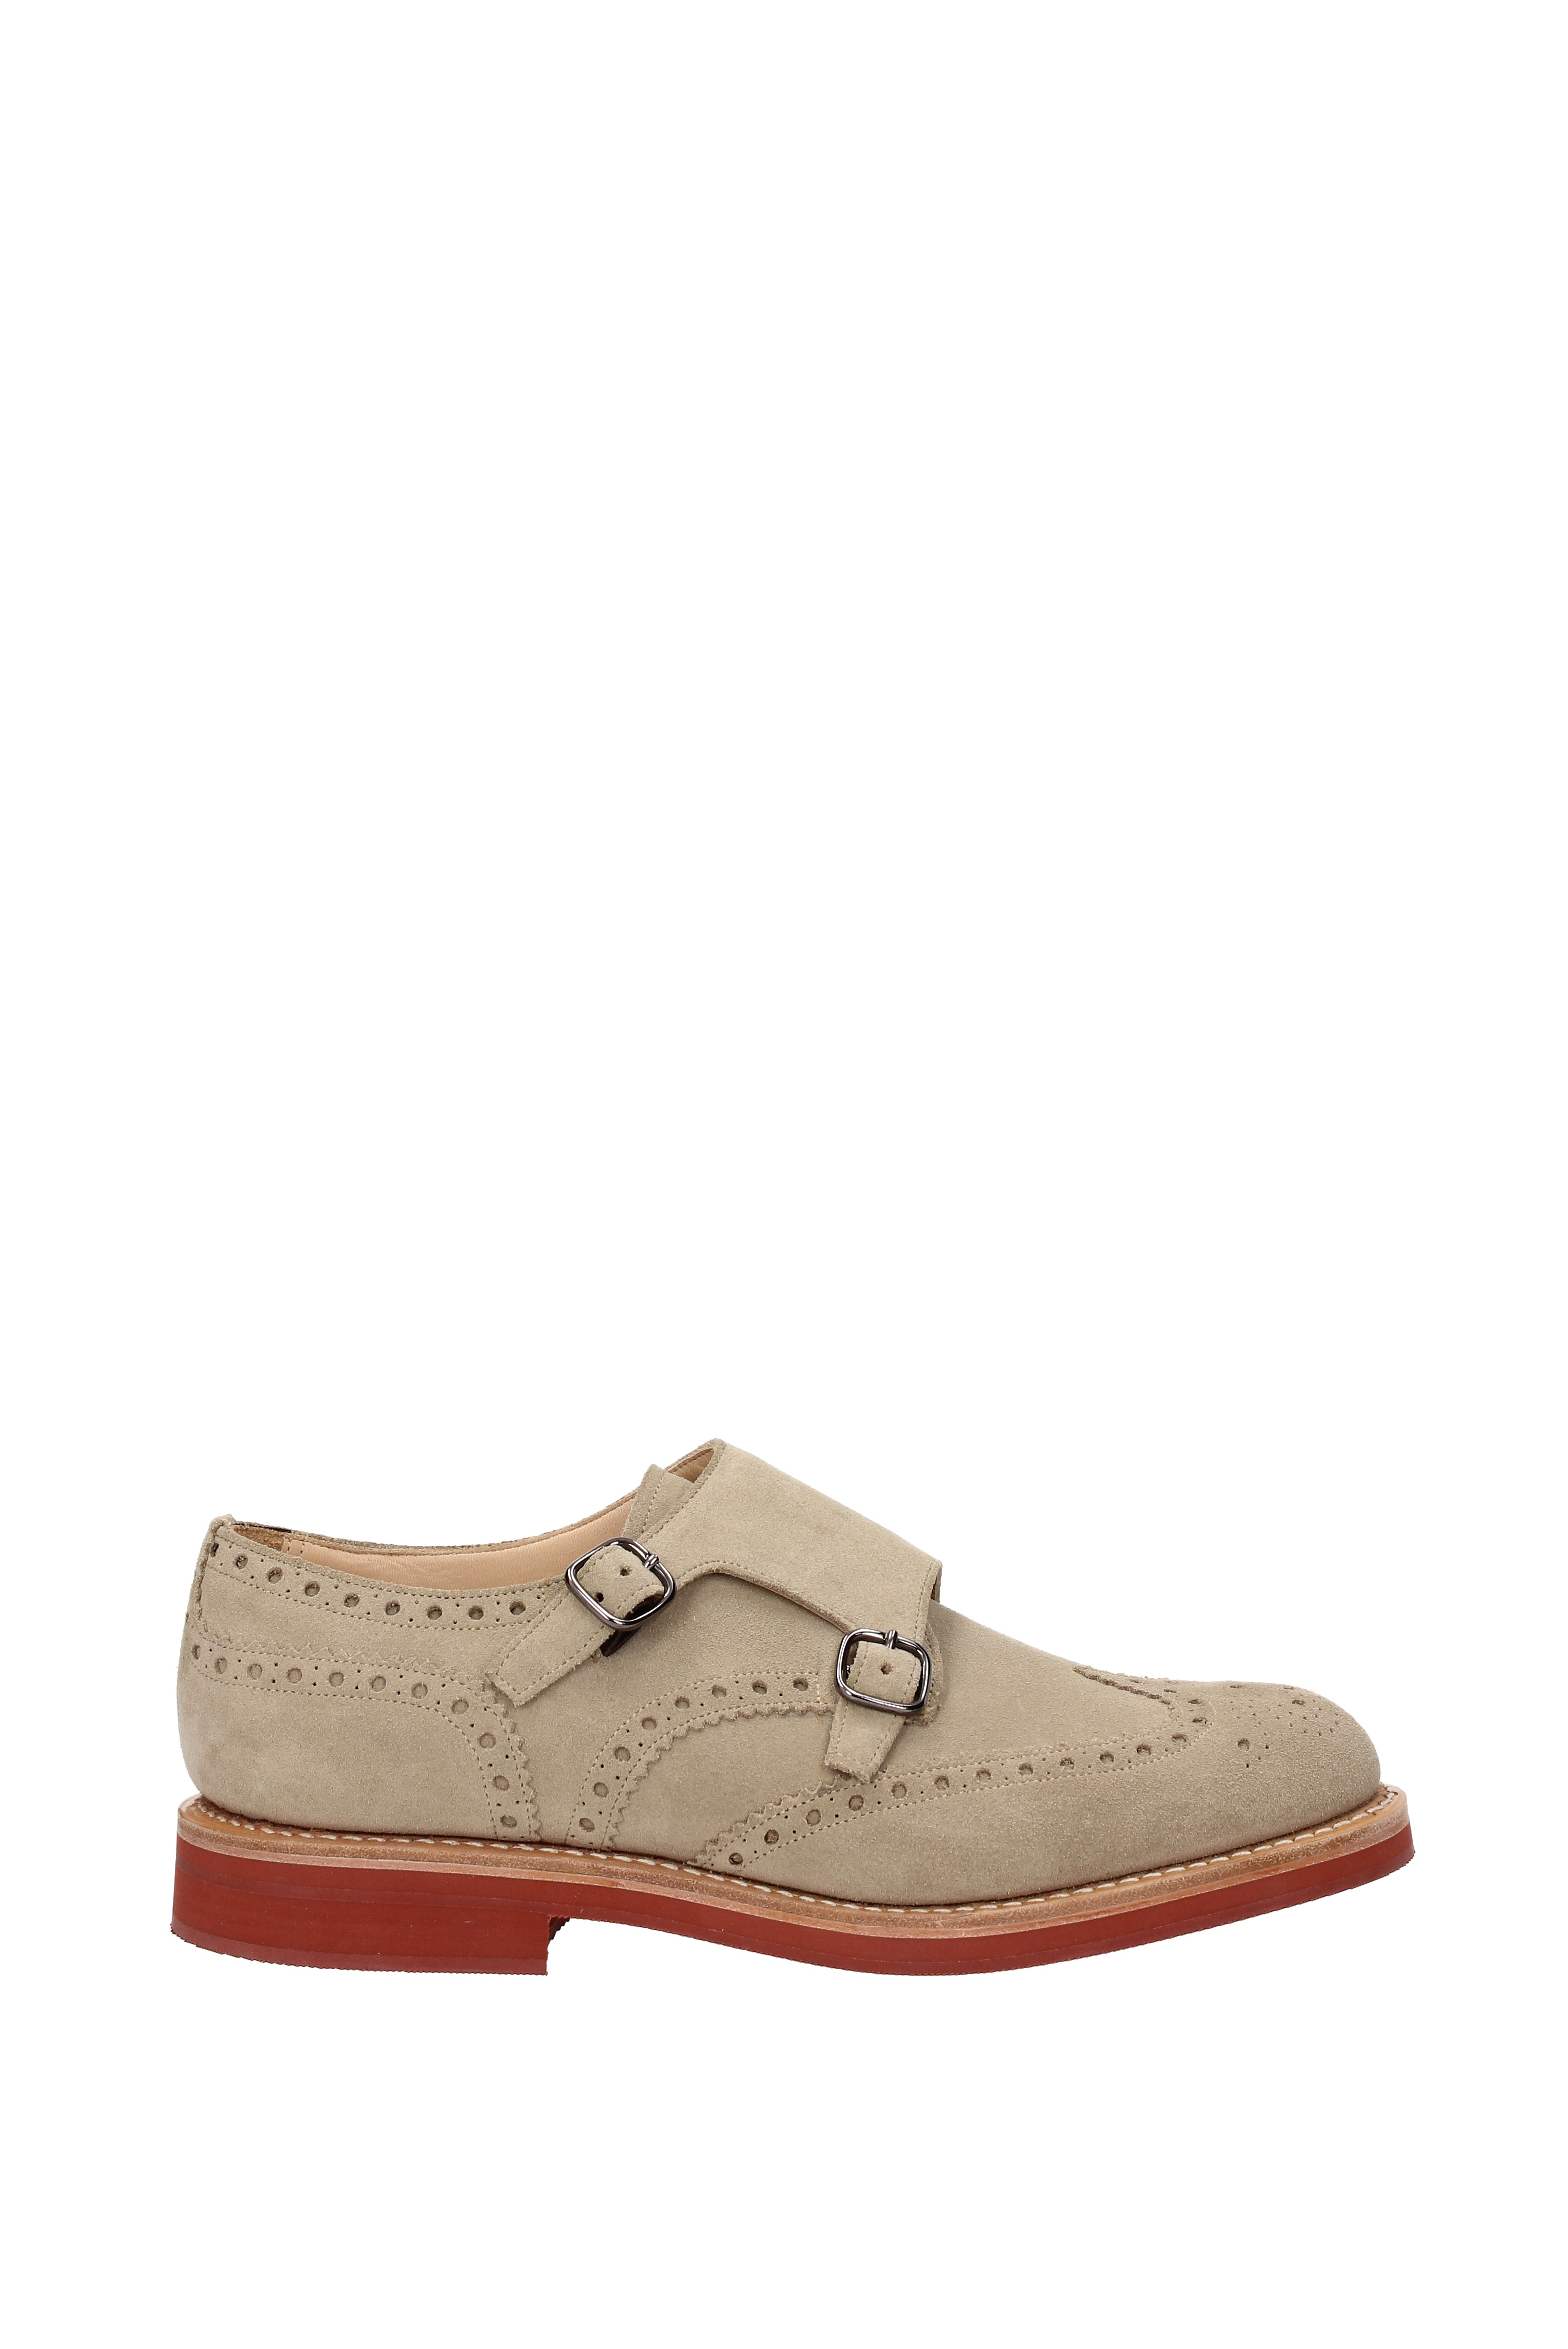 Lace up and Monkstrap Church s kelby 3 Men - Suede (KELBY3OTTERPROOF ... 4171dbe2171